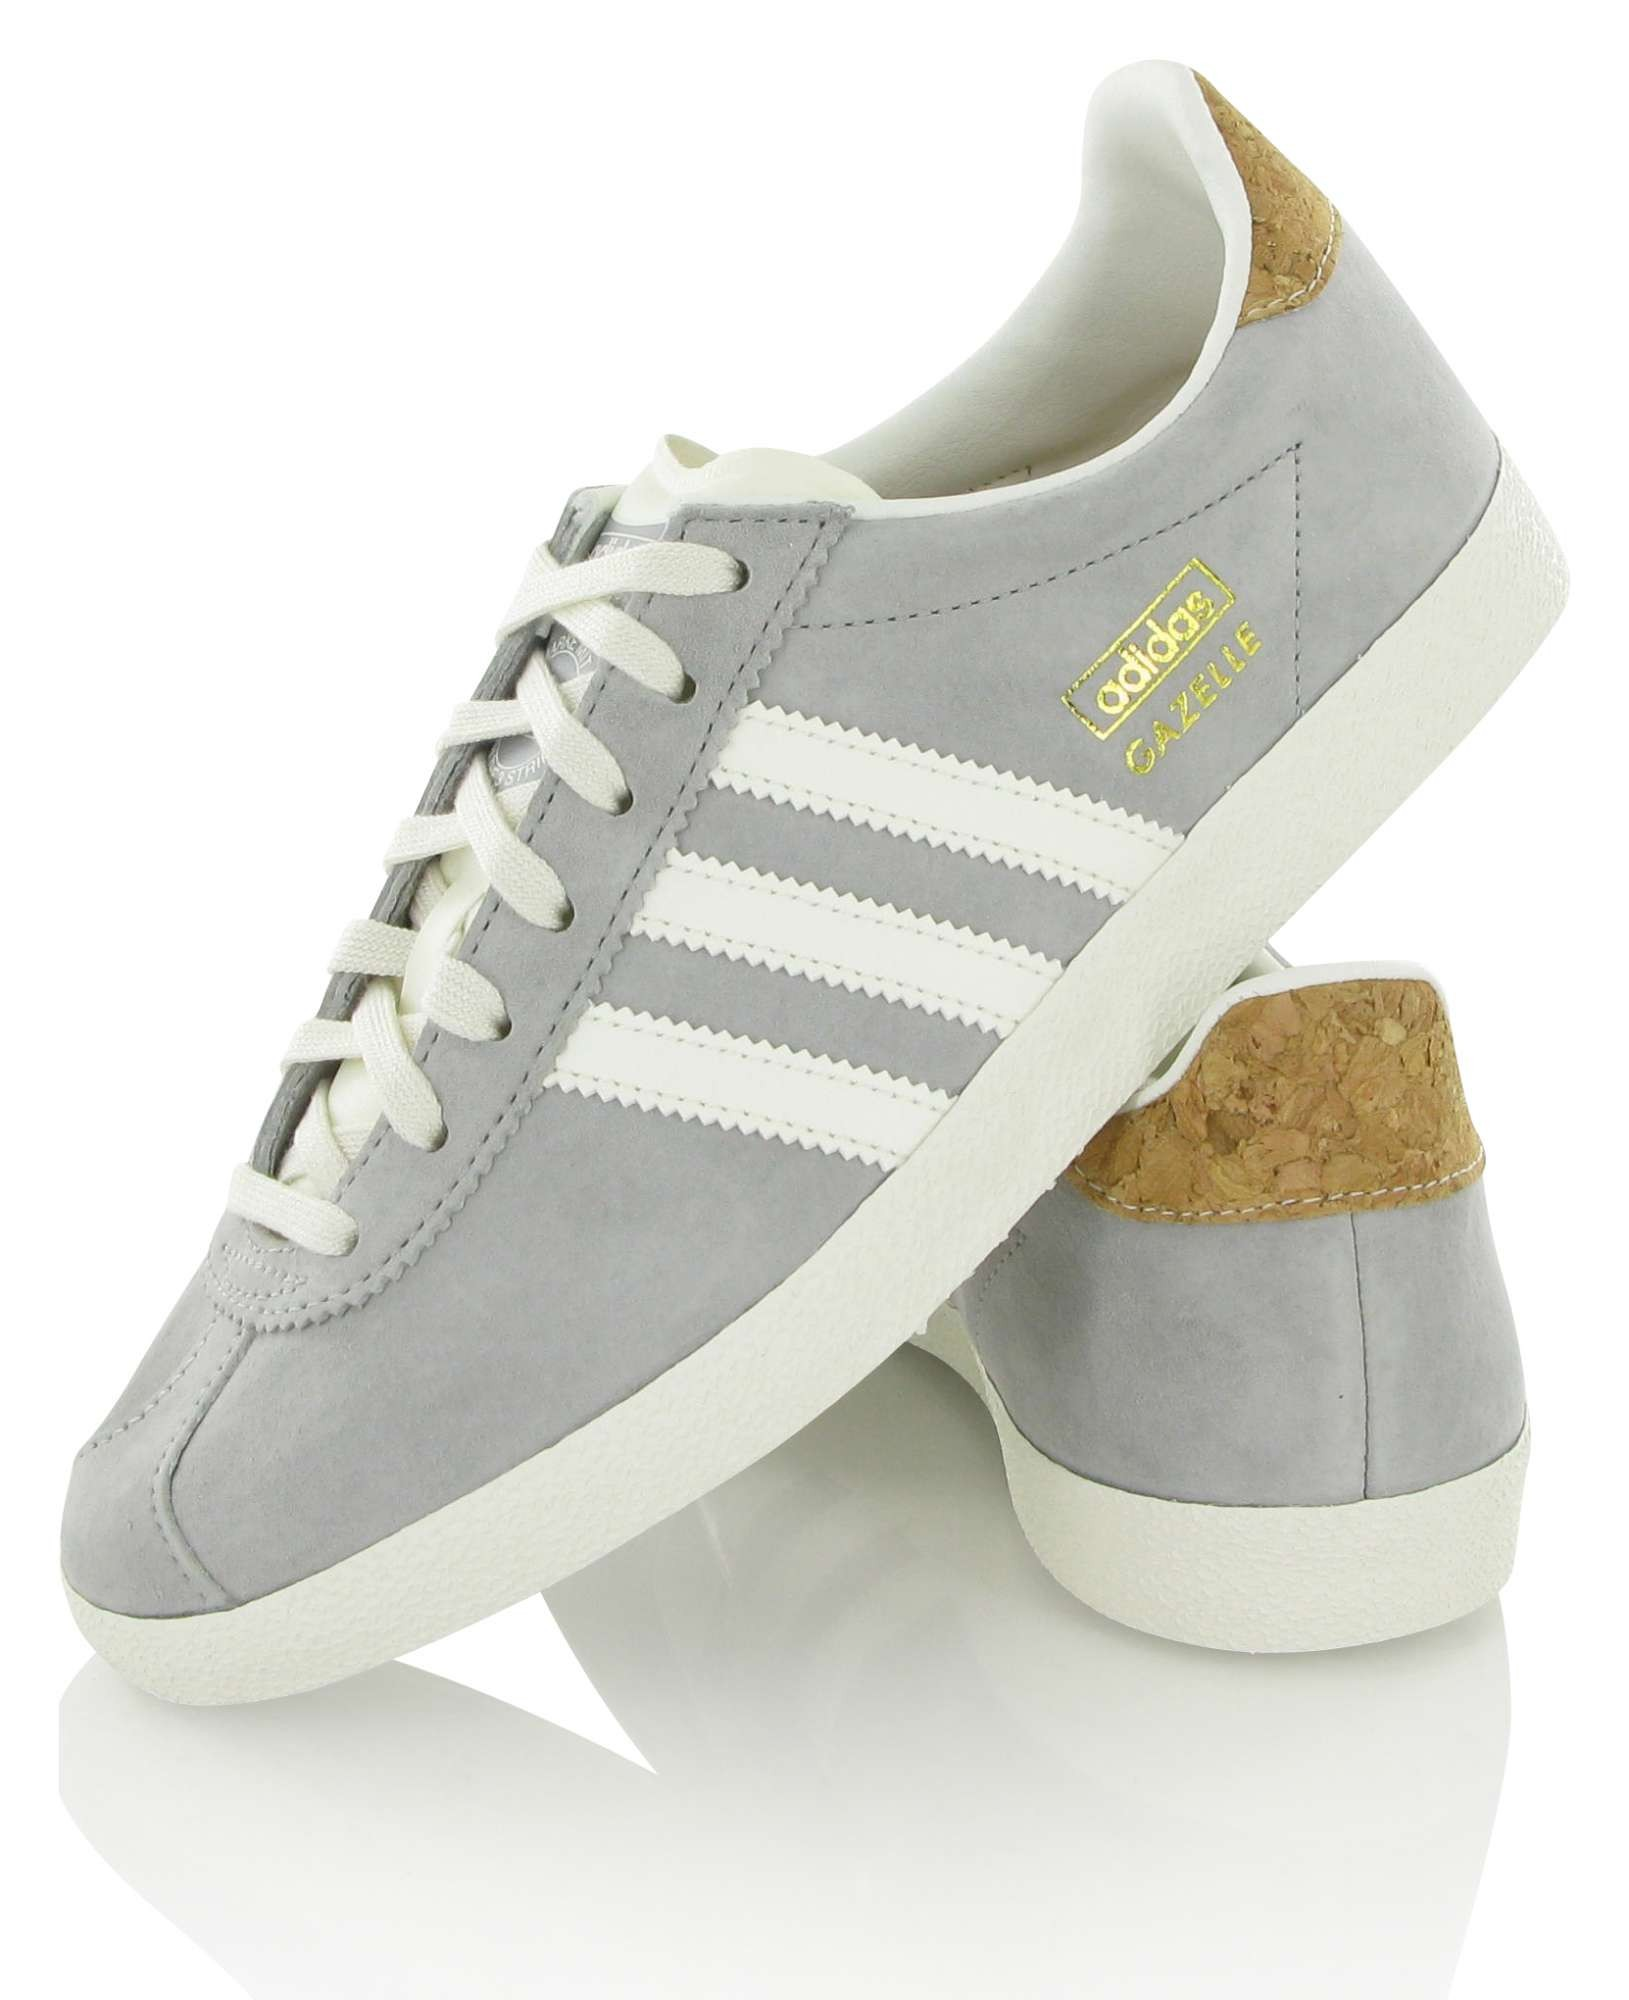 adidas gazelle og pas cher femme allow project.eu